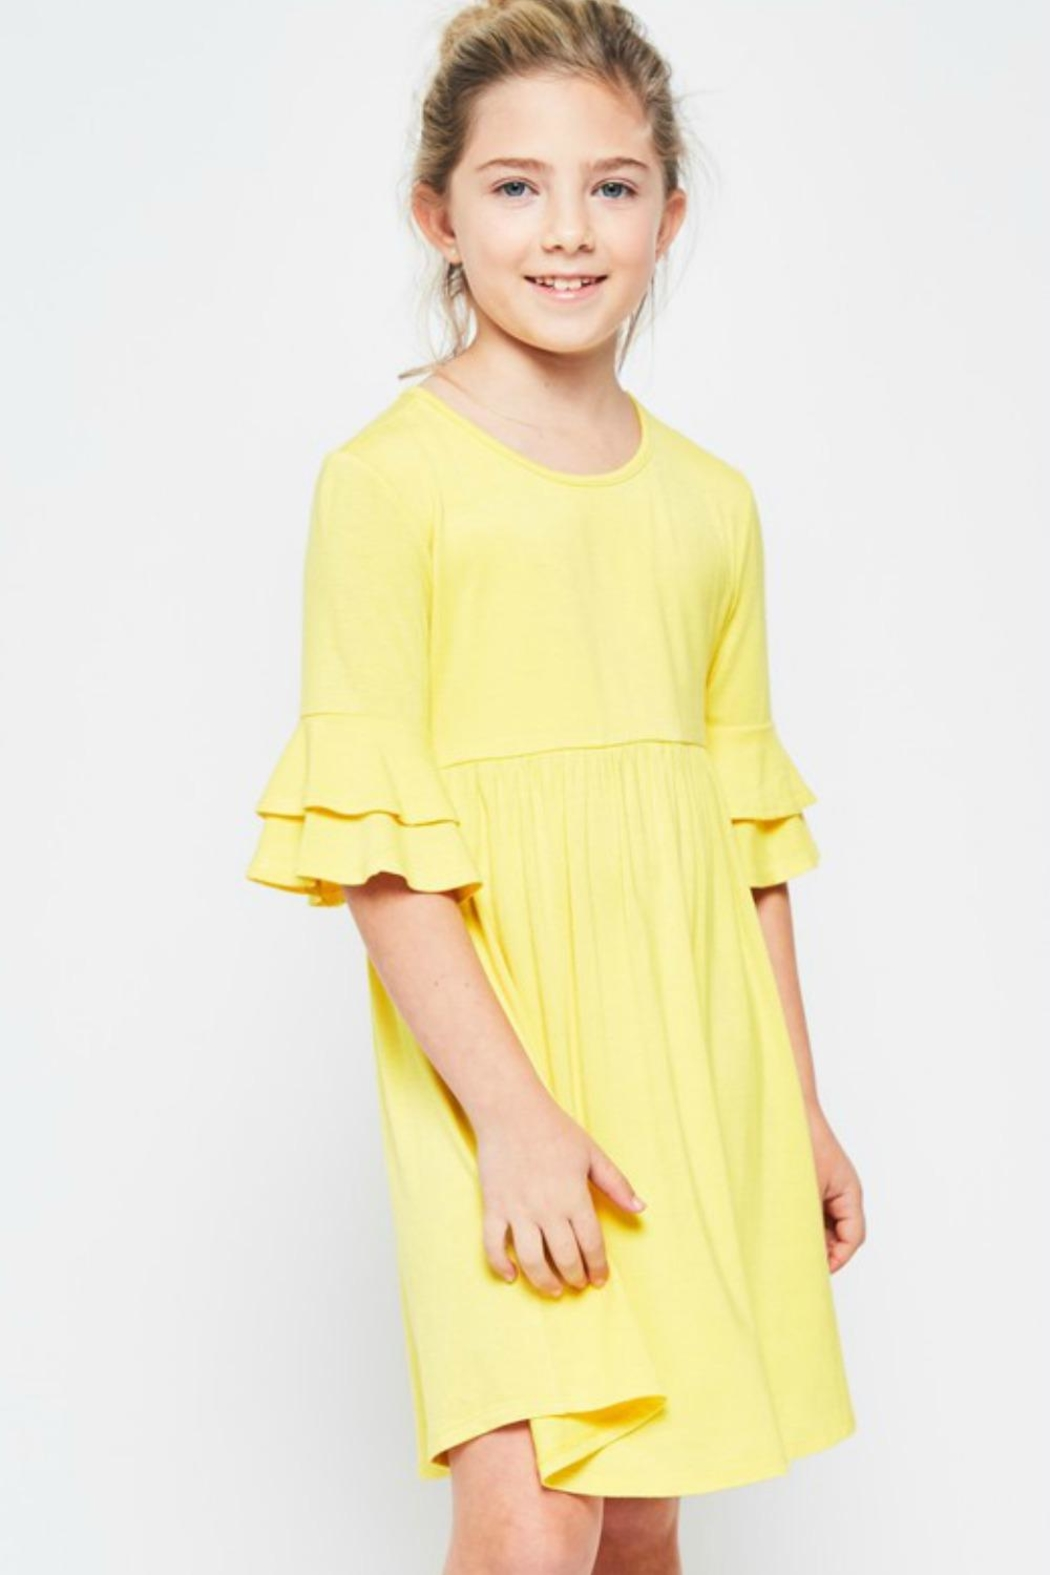 GTOG Yellow Flutter Dress - Main Image